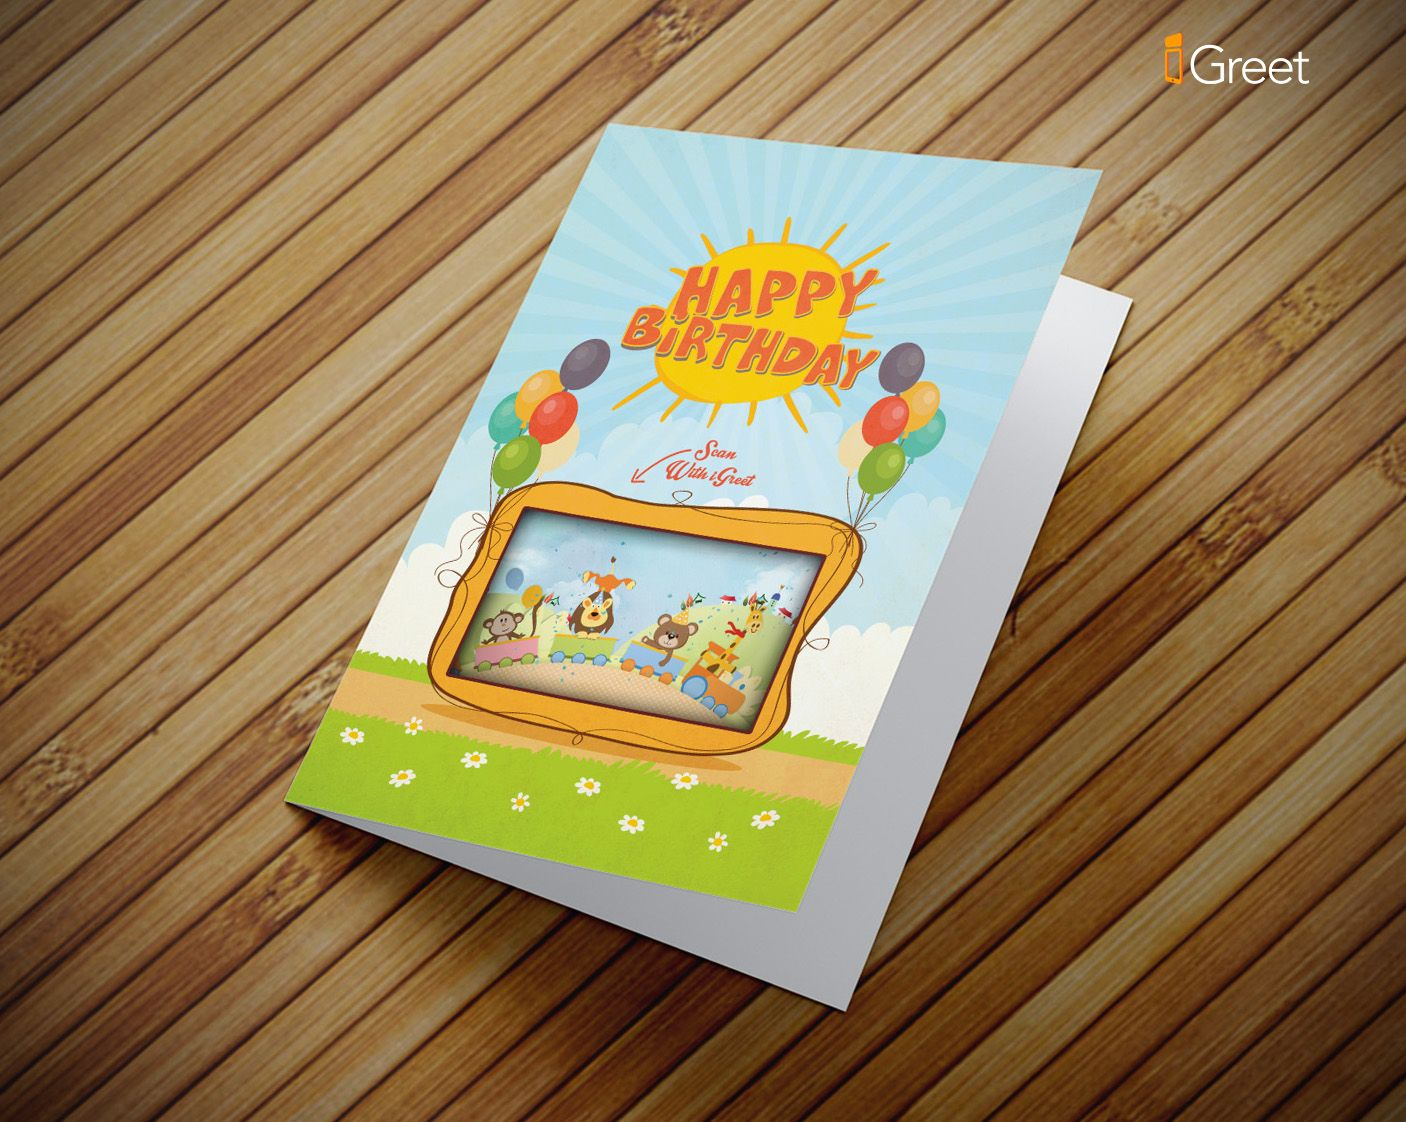 Birthday greeting card for kids cute zoo animals party birthday greeting card for kids cute zoo animals m4hsunfo